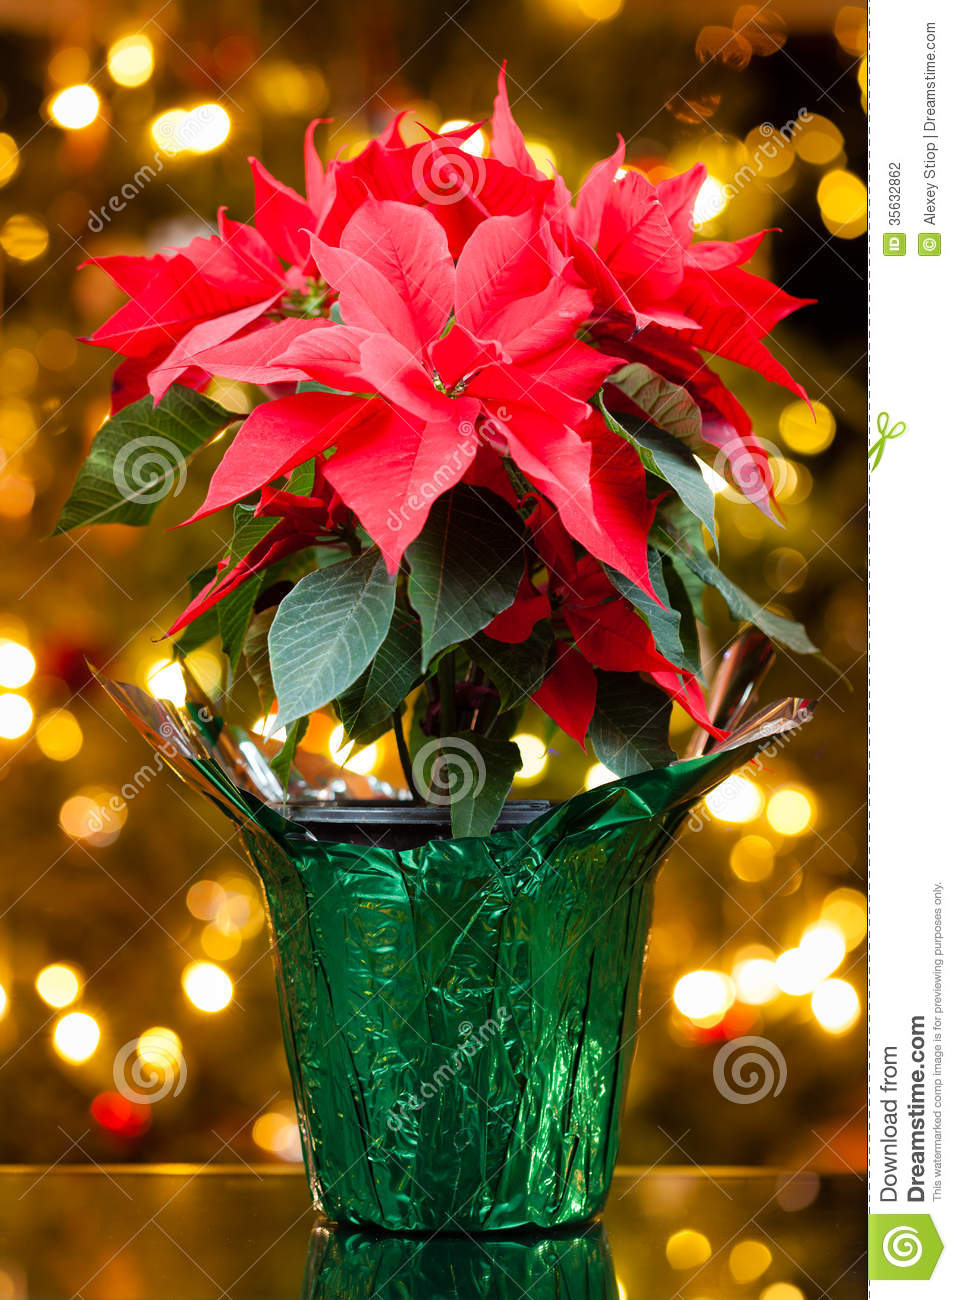 Poinsettia Stock Photography - Image: 35632862